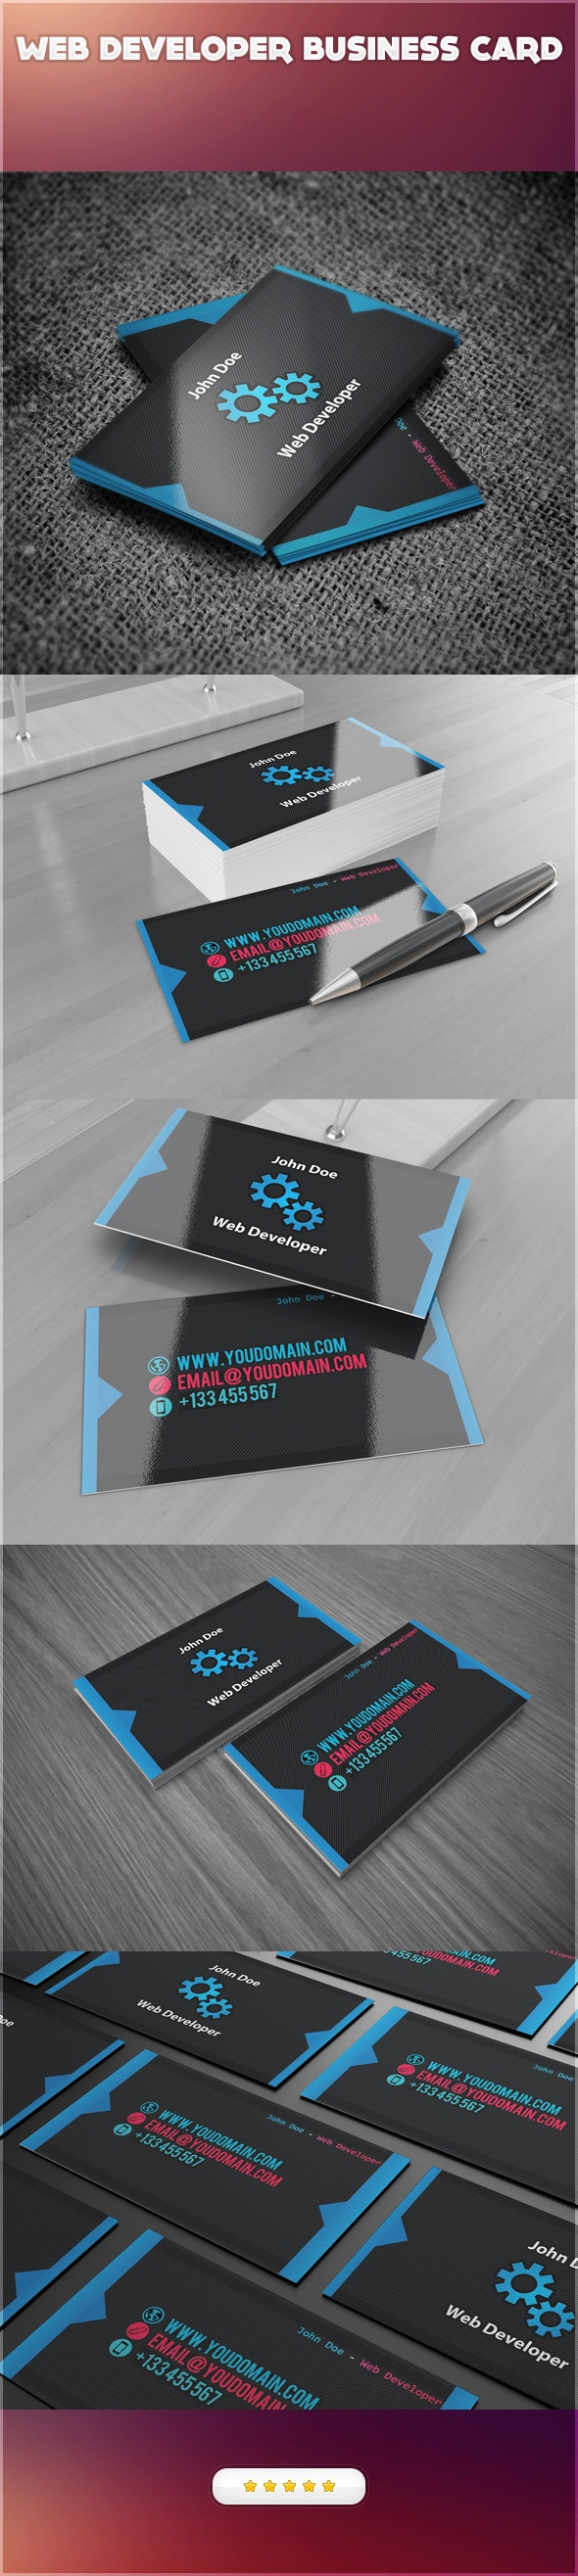 Web developer business card by evofx1 on deviantart httpwww web developer business card by evofx1 on deviantart httptechirsh business cards pinterest business cards logo branding and logos magicingreecefo Choice Image